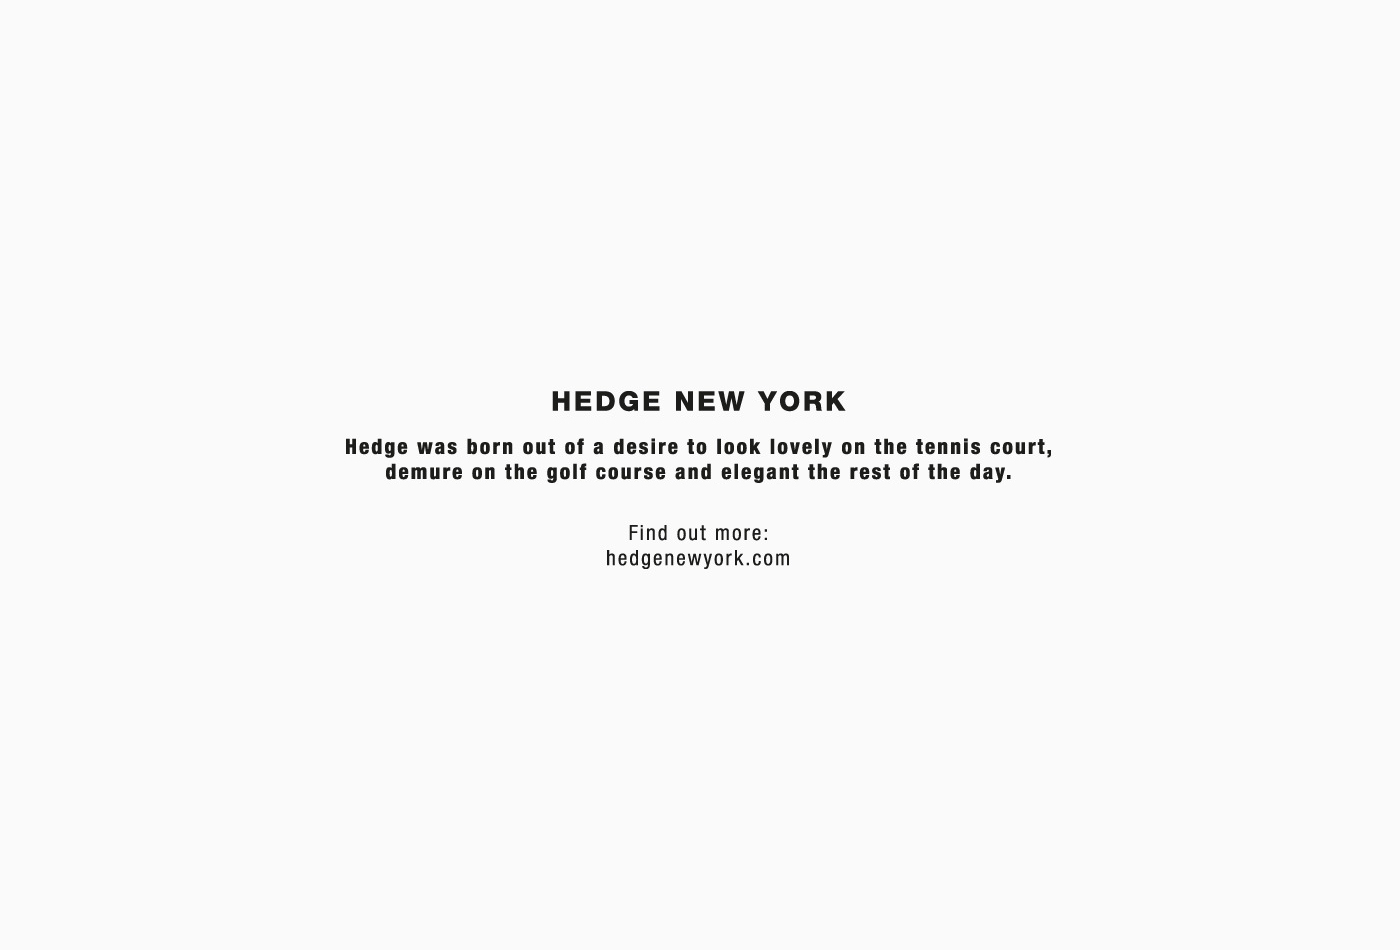 hedge-about-vacaliebres-client-nyc-ny-branding-hedgehog